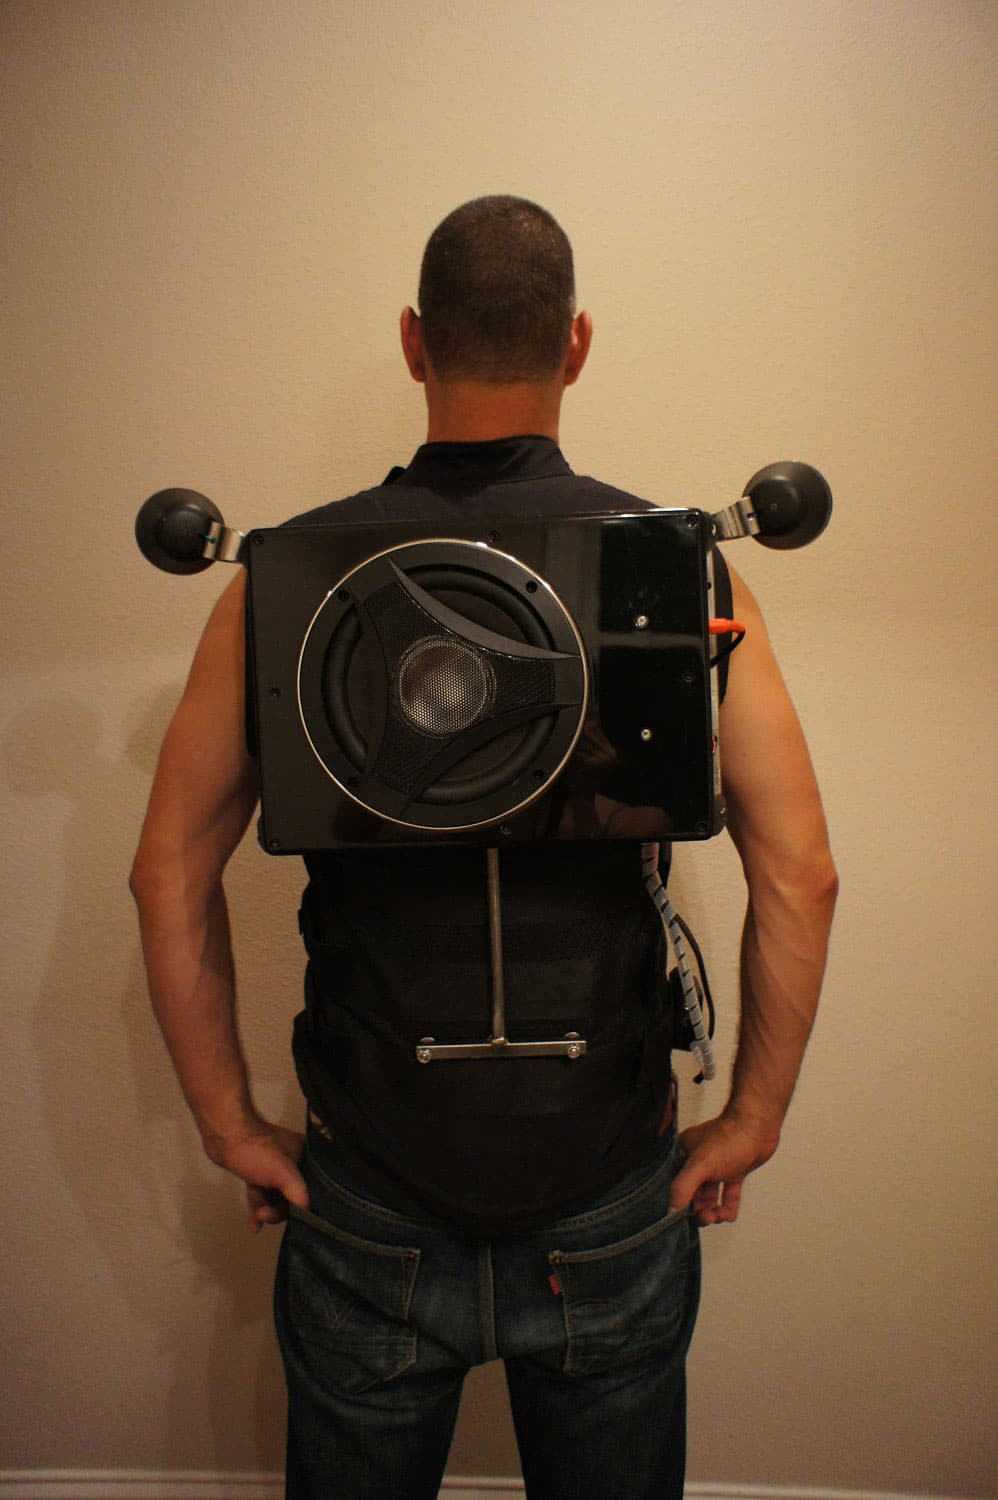 Wearable Boombox Backpack Packs A Divine Punch